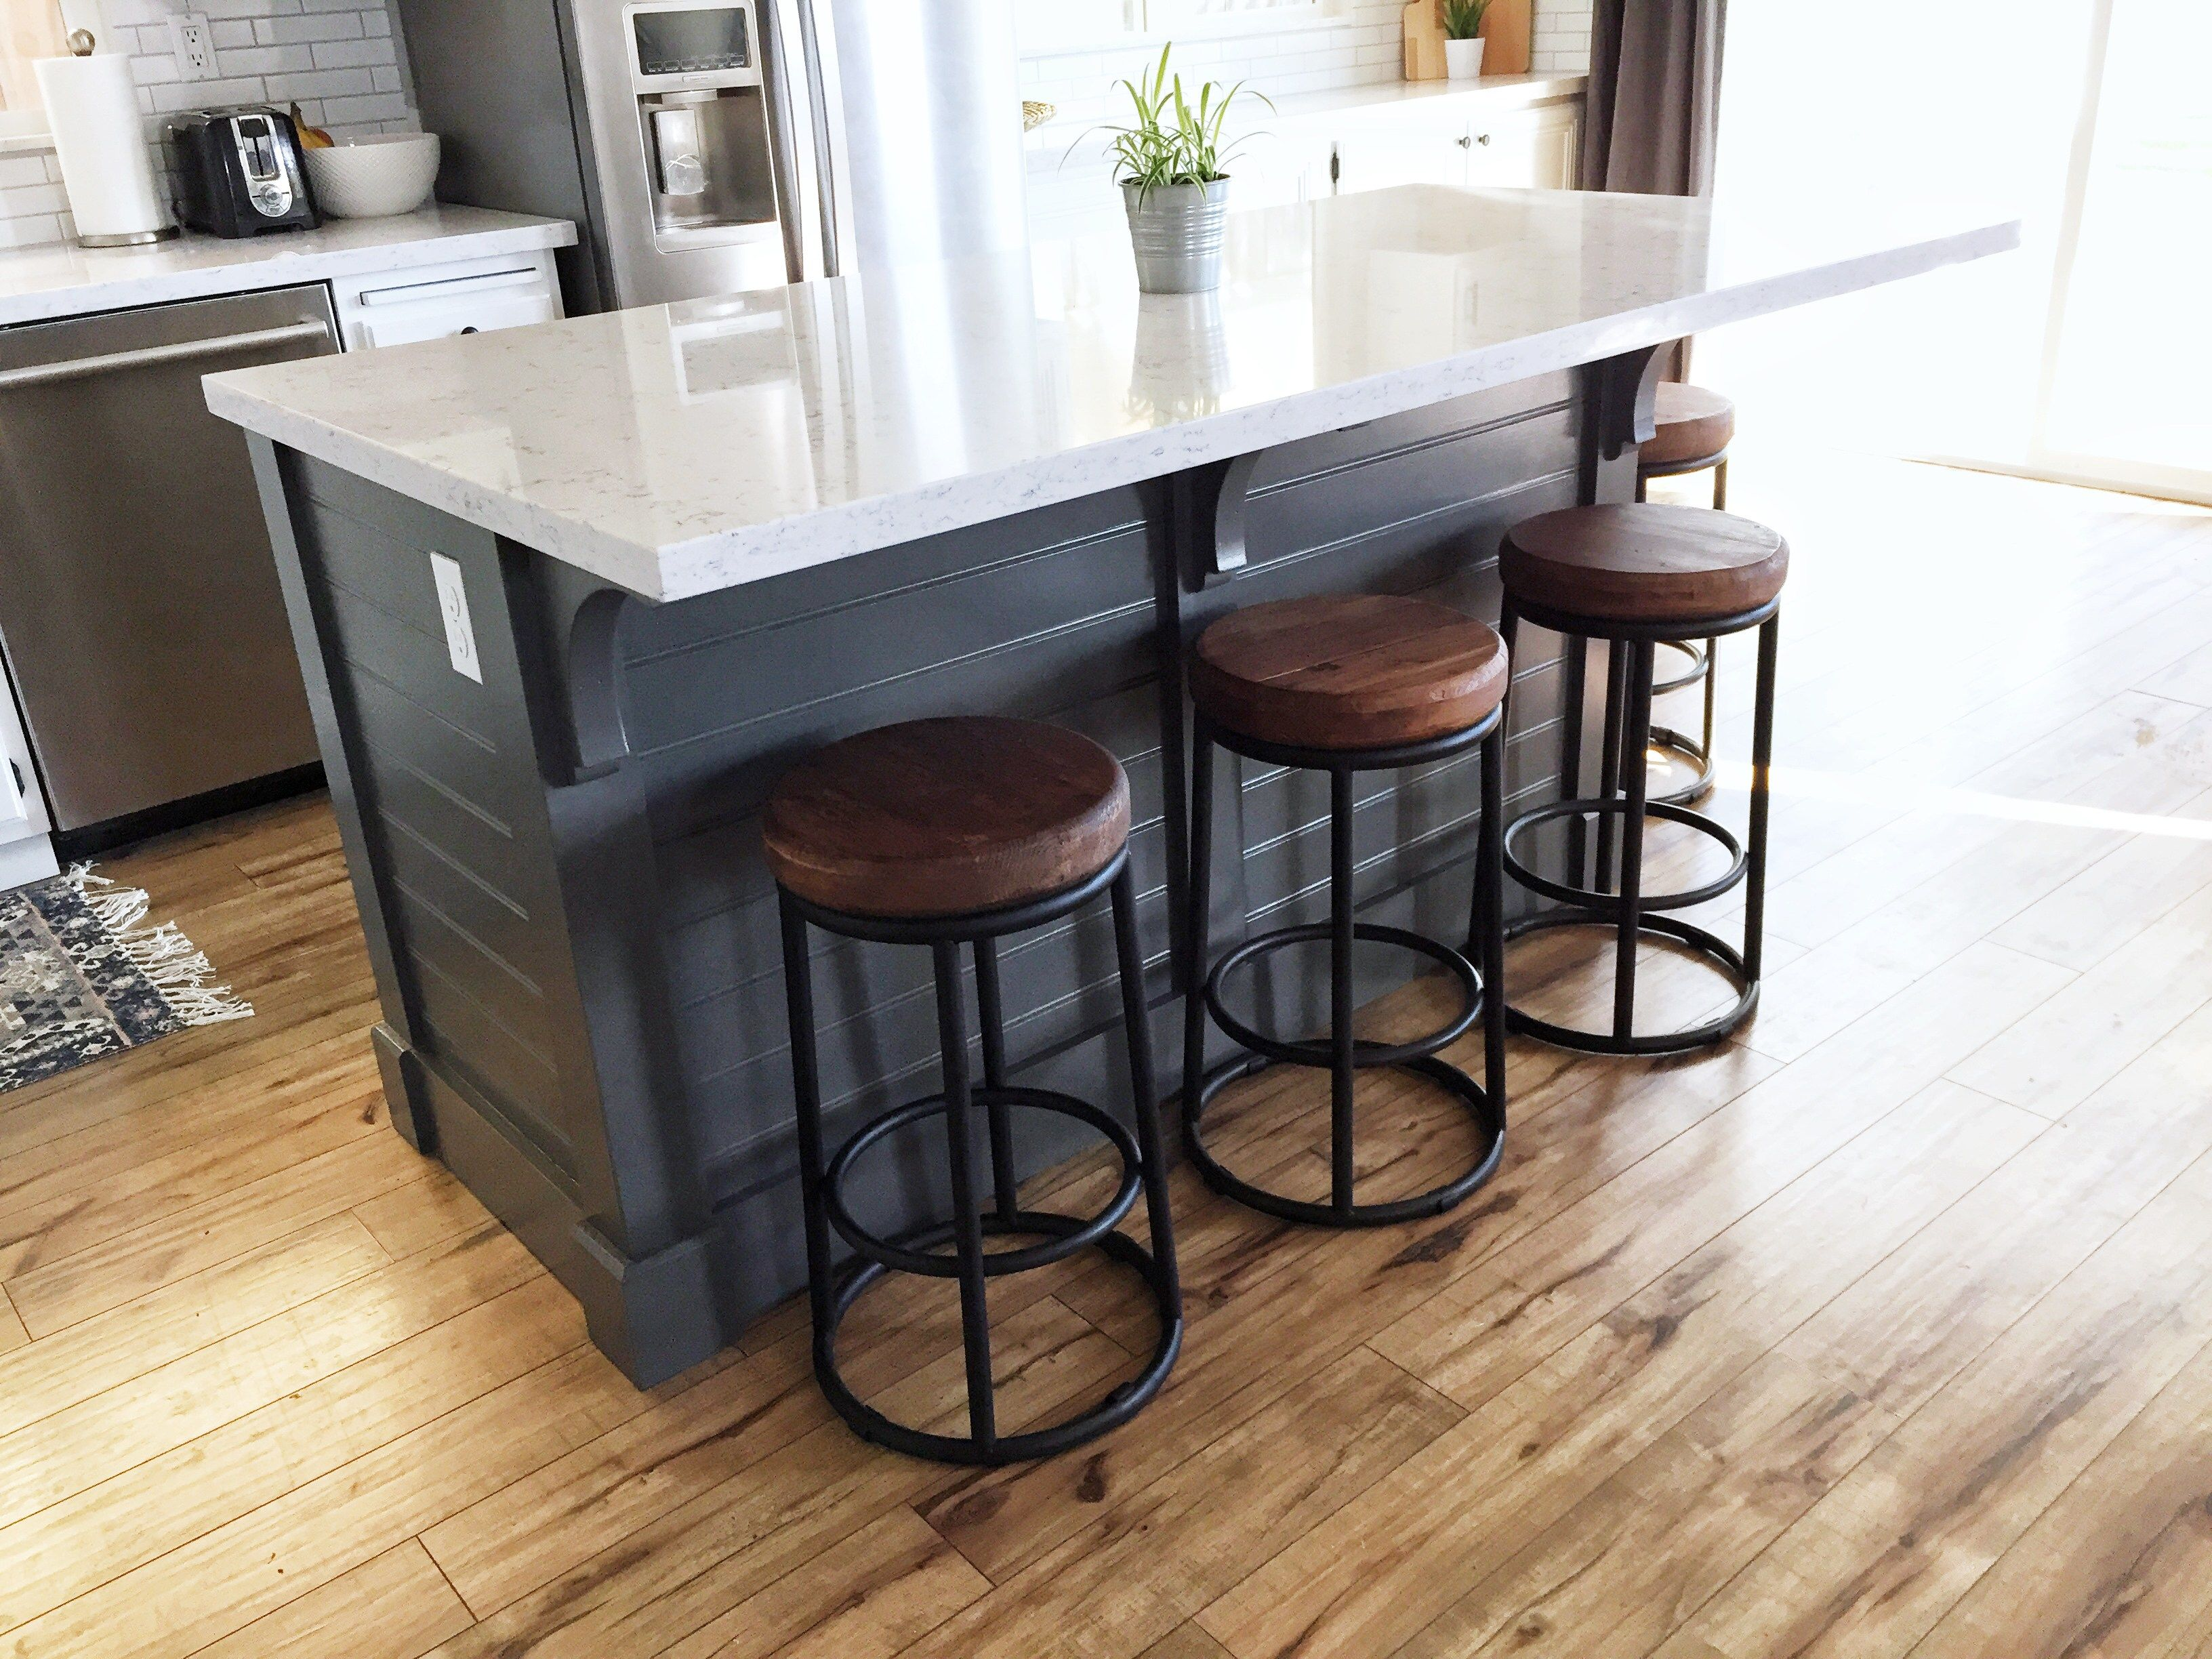 Kitchen Island Make It Yourself Save Big Home Pinterest - How to build a kitchen island with seating